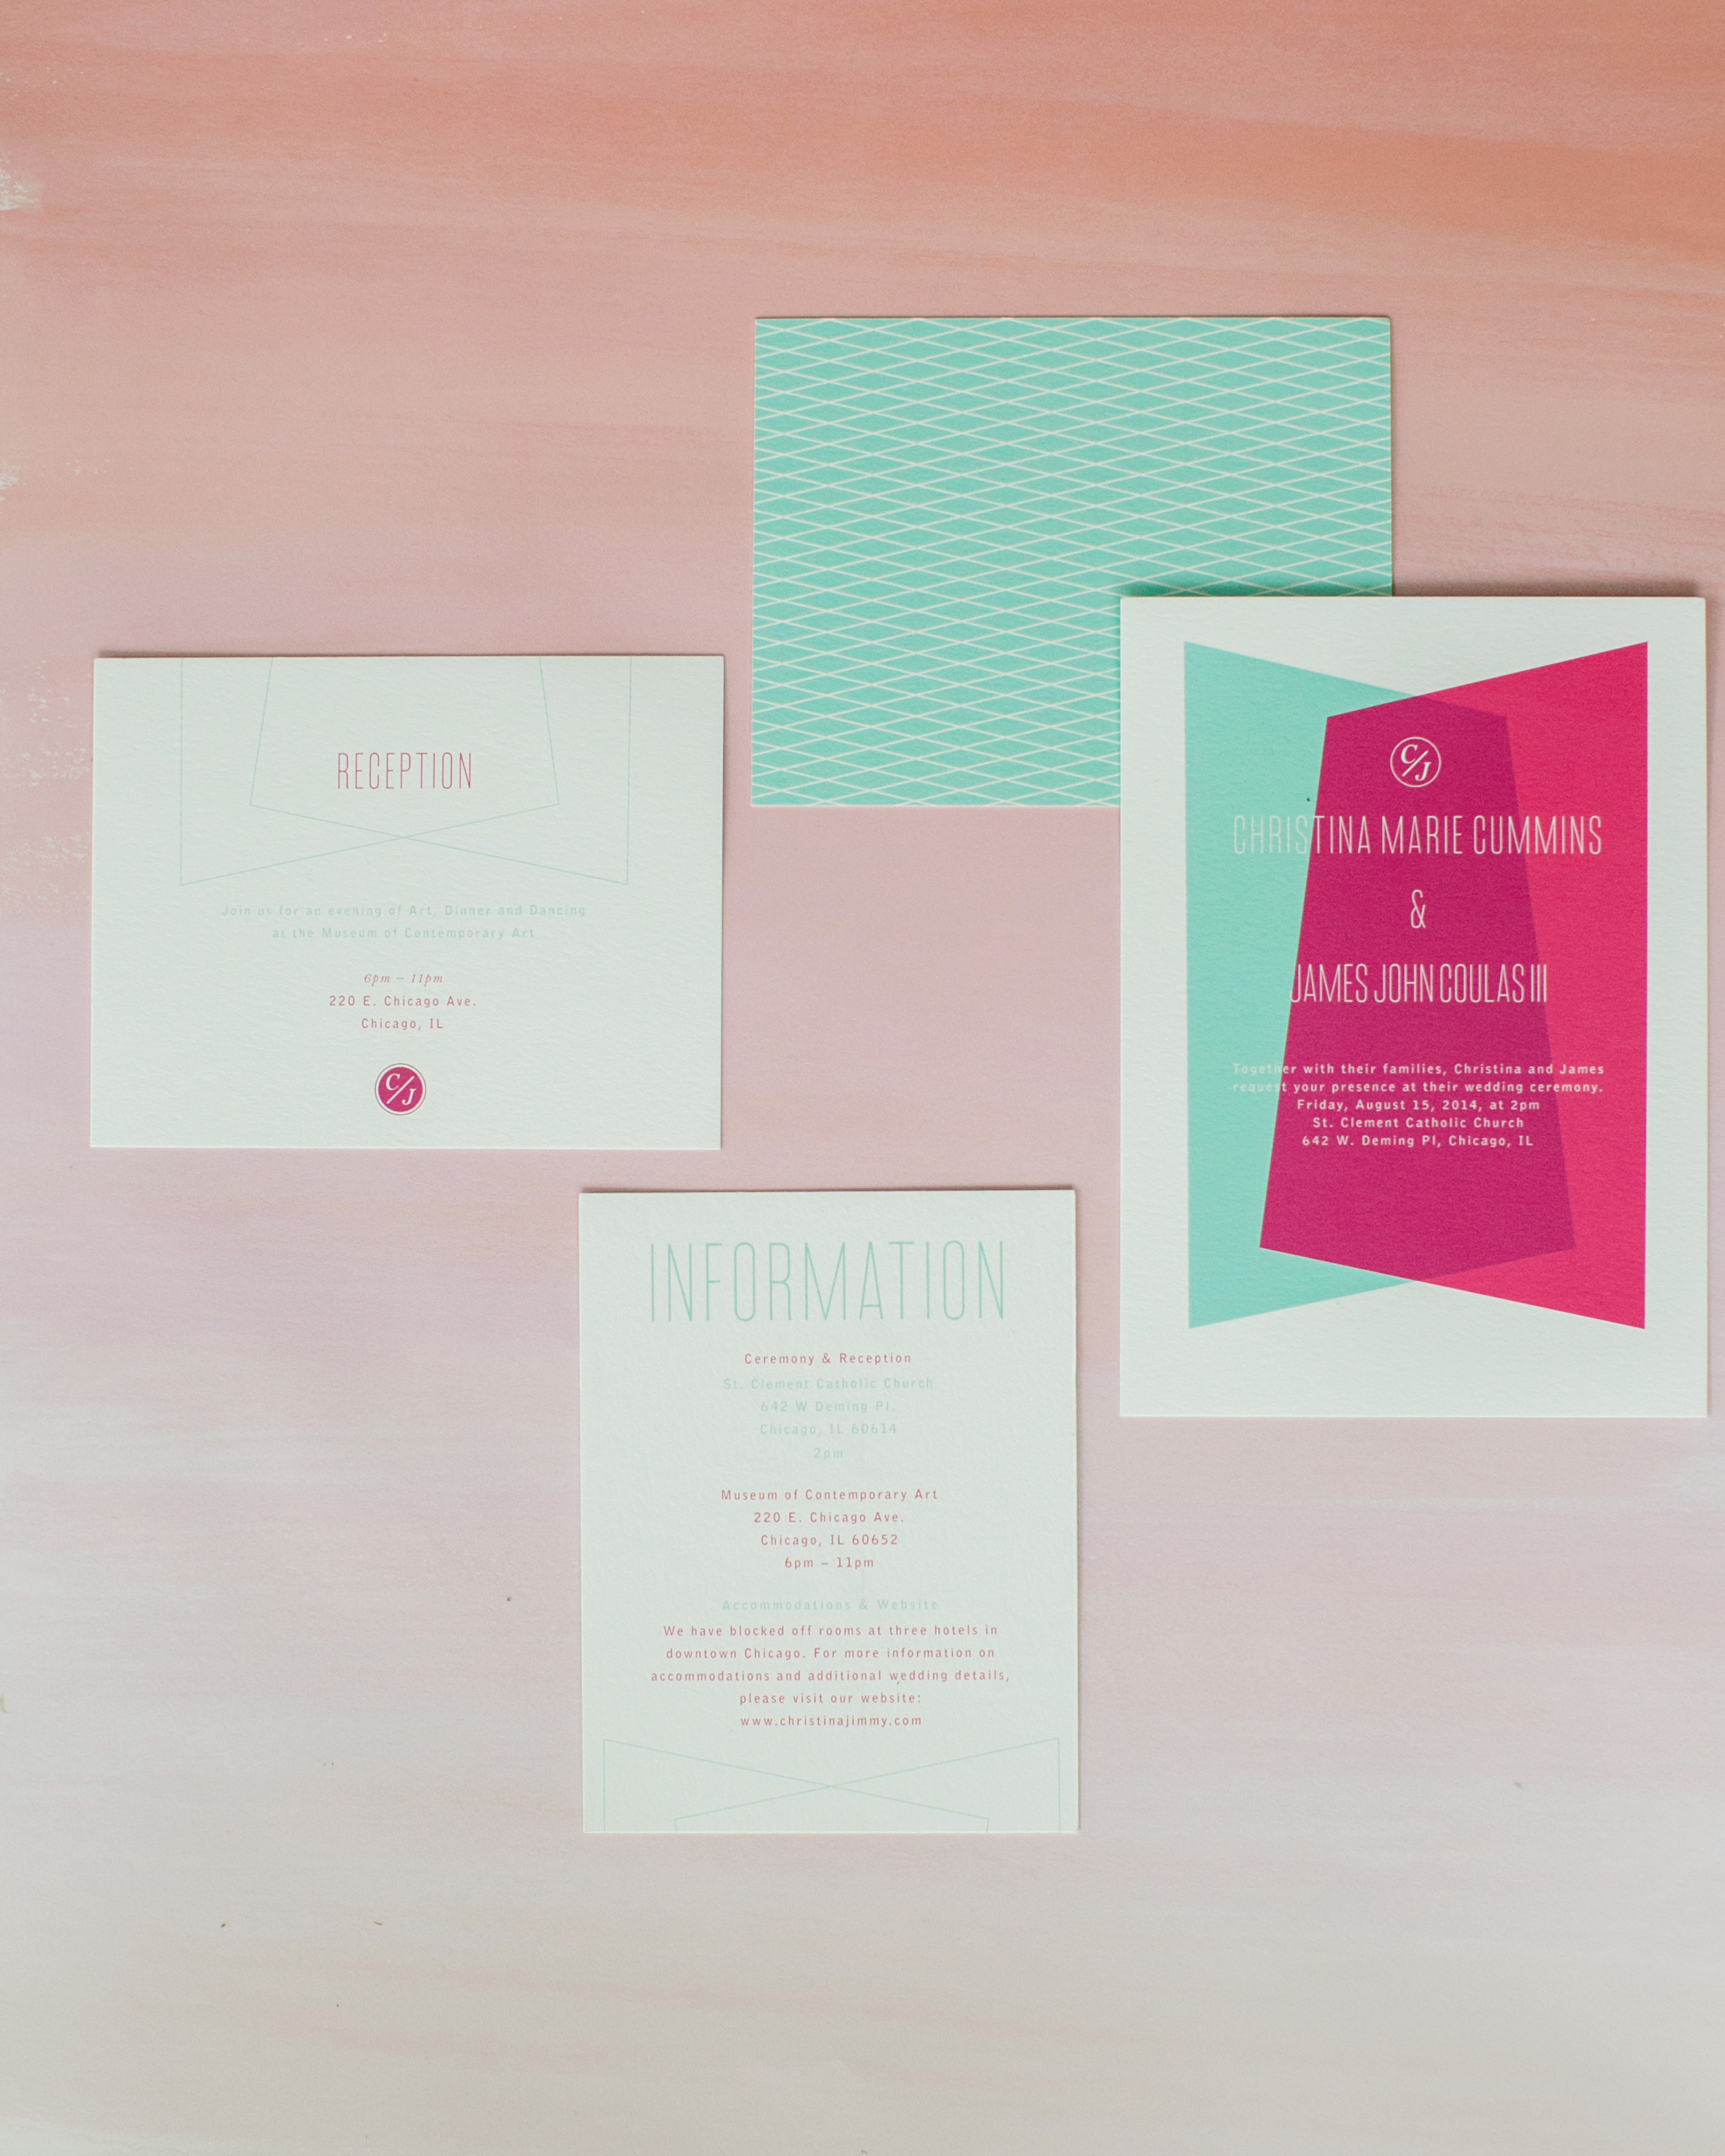 The Stationery Suite